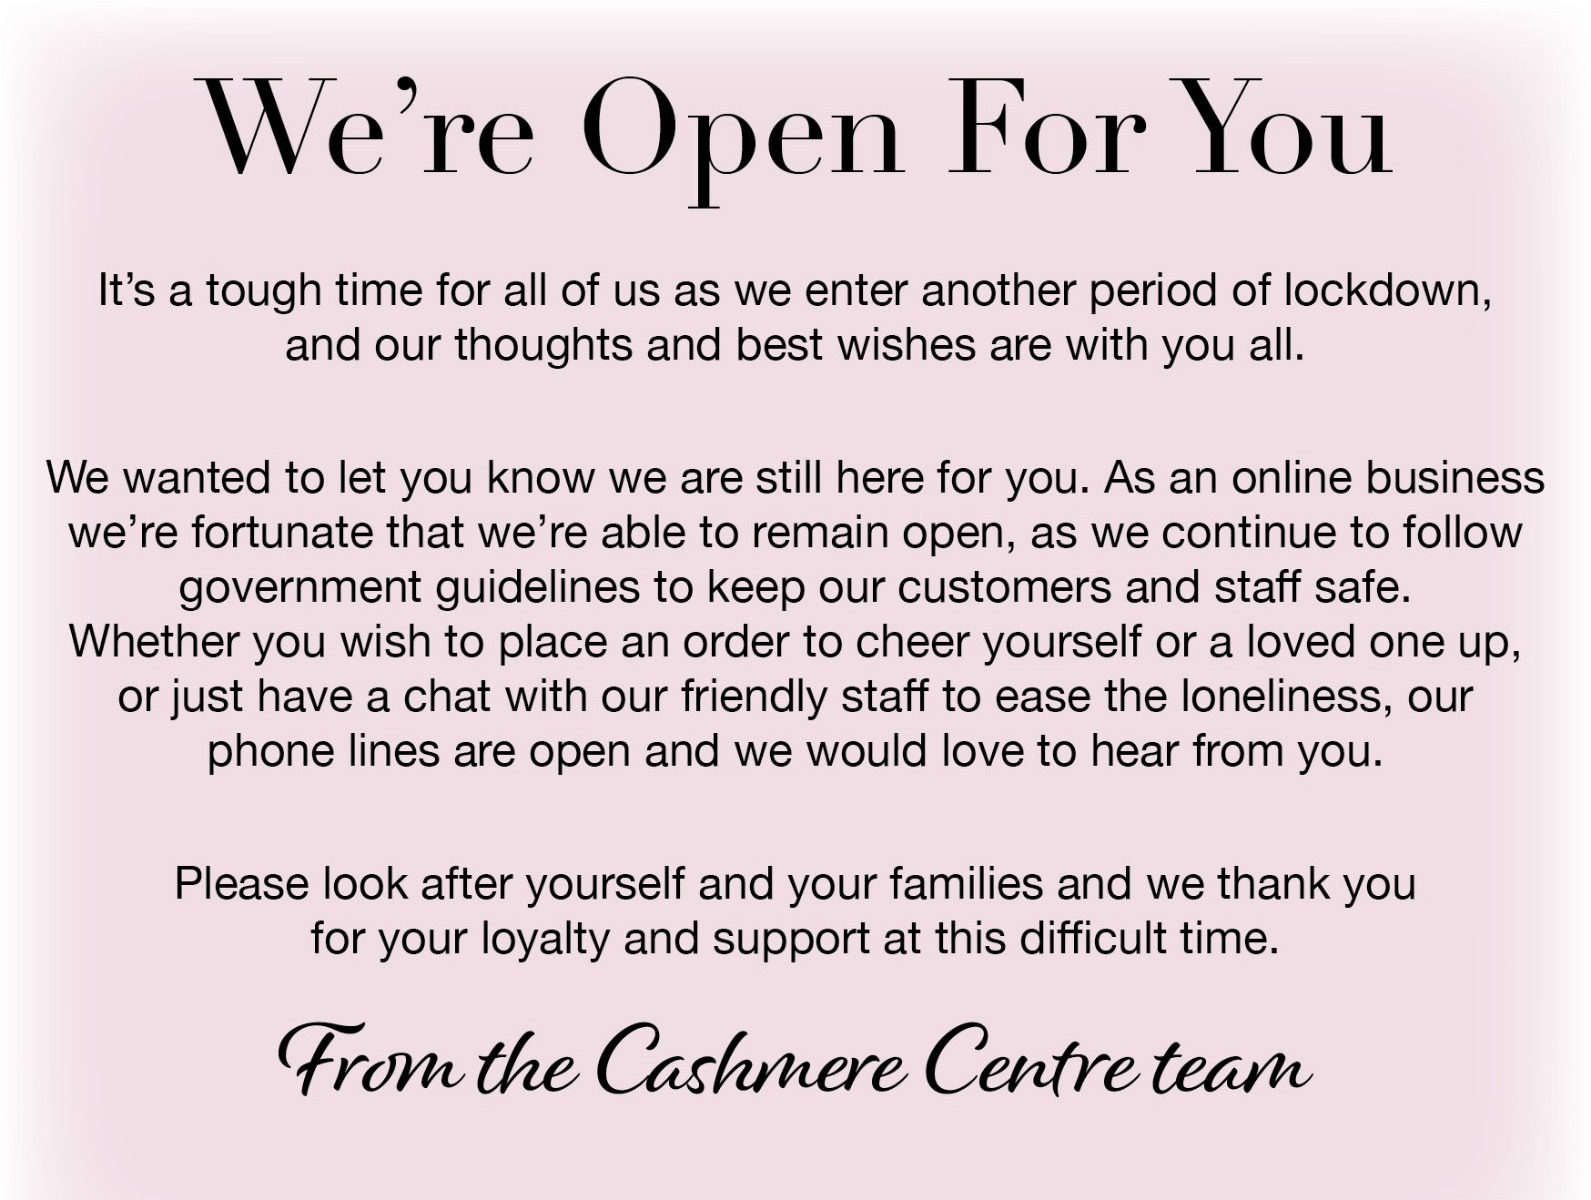 Cashmere Centre is open and working safely